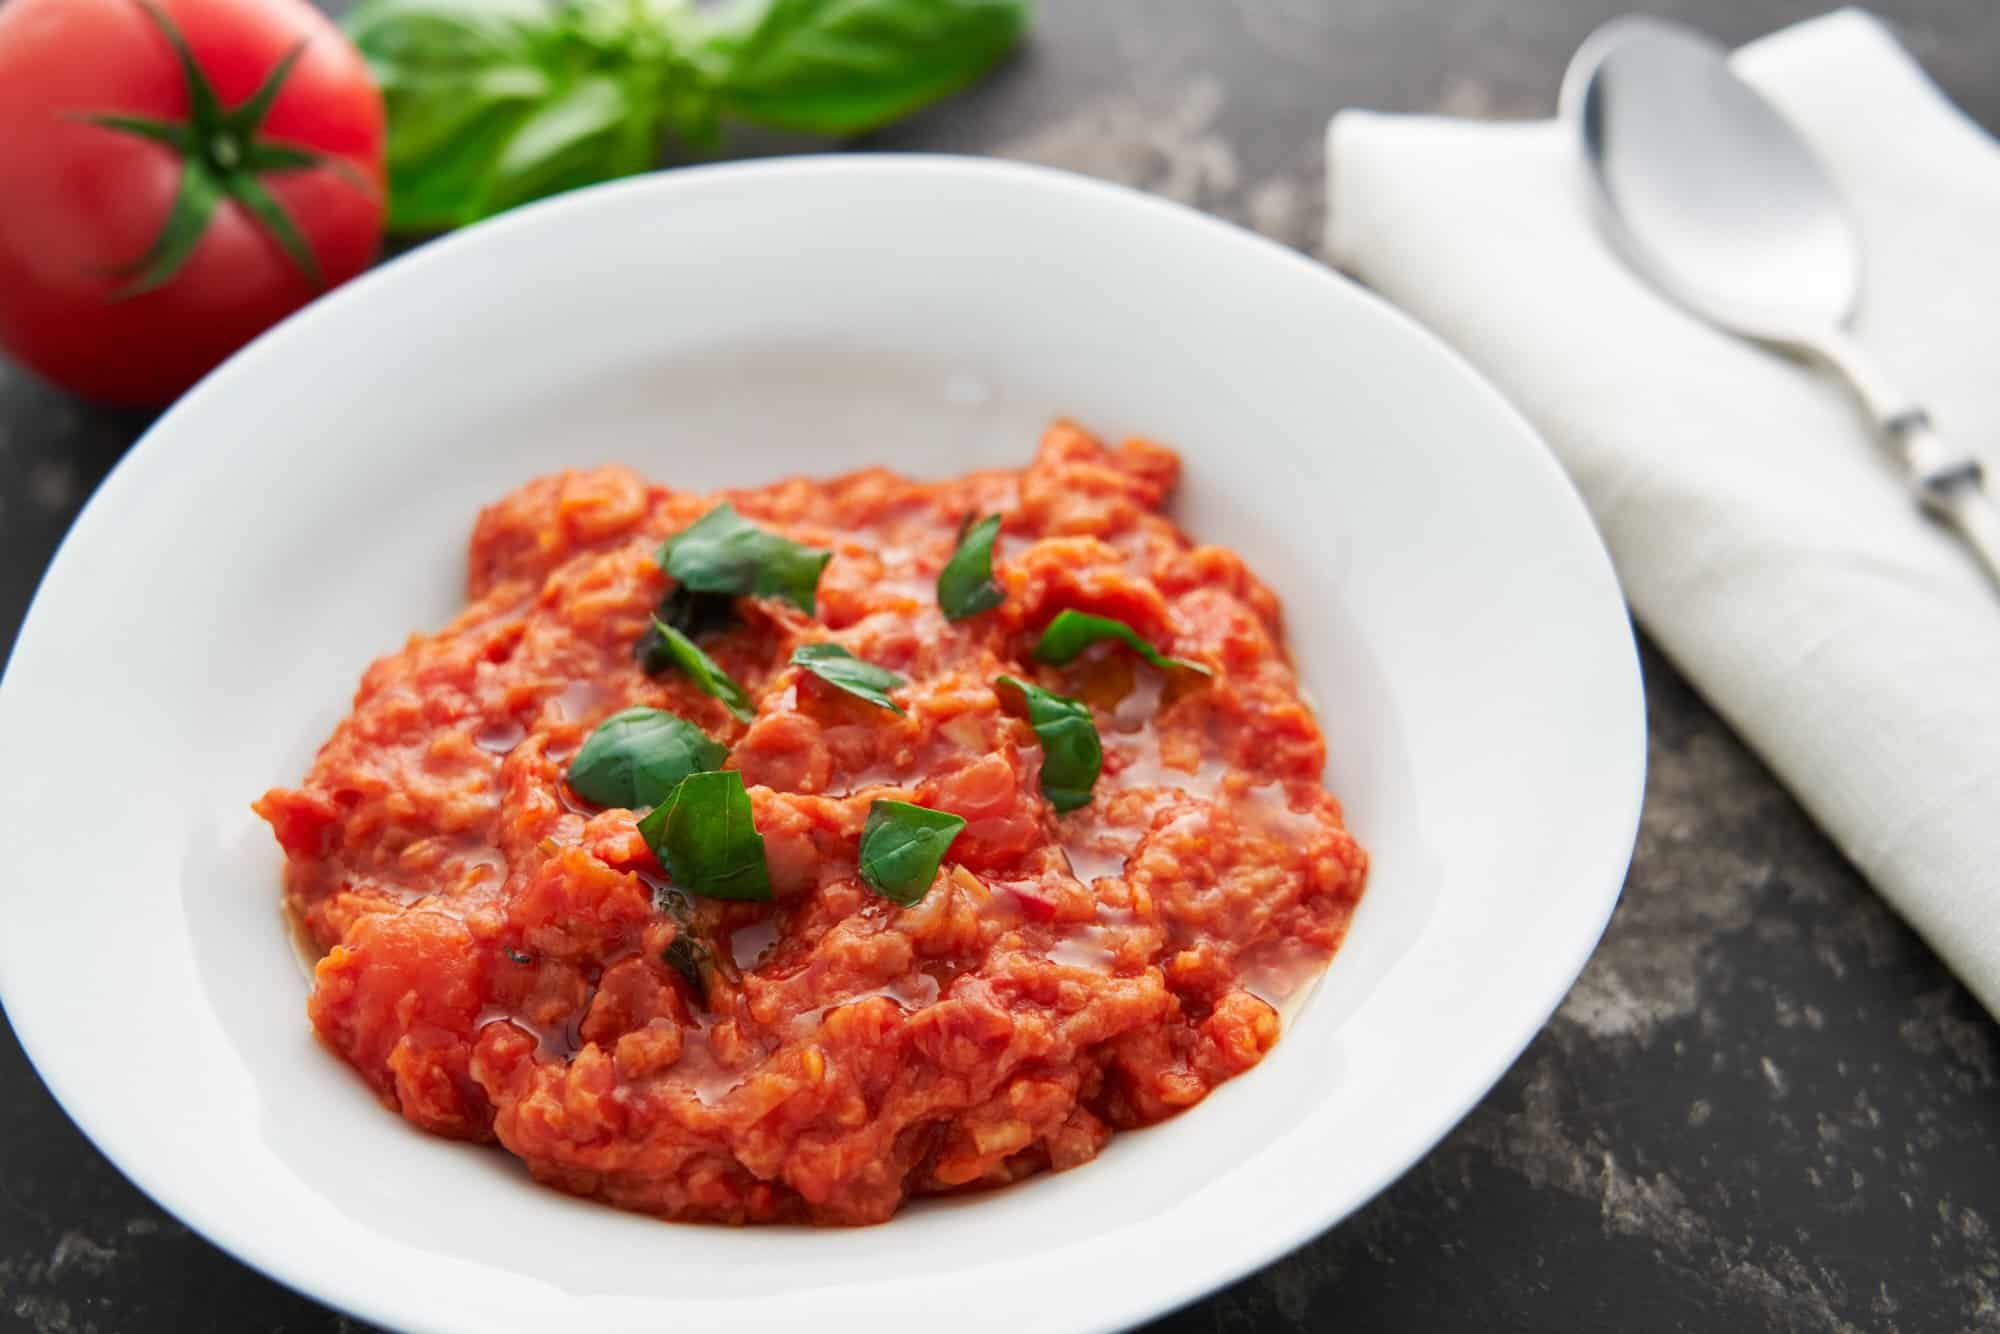 Pappa al Pomodoro, or Tuscan Bread and Tomato Porridge made with a flavorful tomato soup thickened with crusty bread, served with fresh torn basil and a drizzle of olive oil.